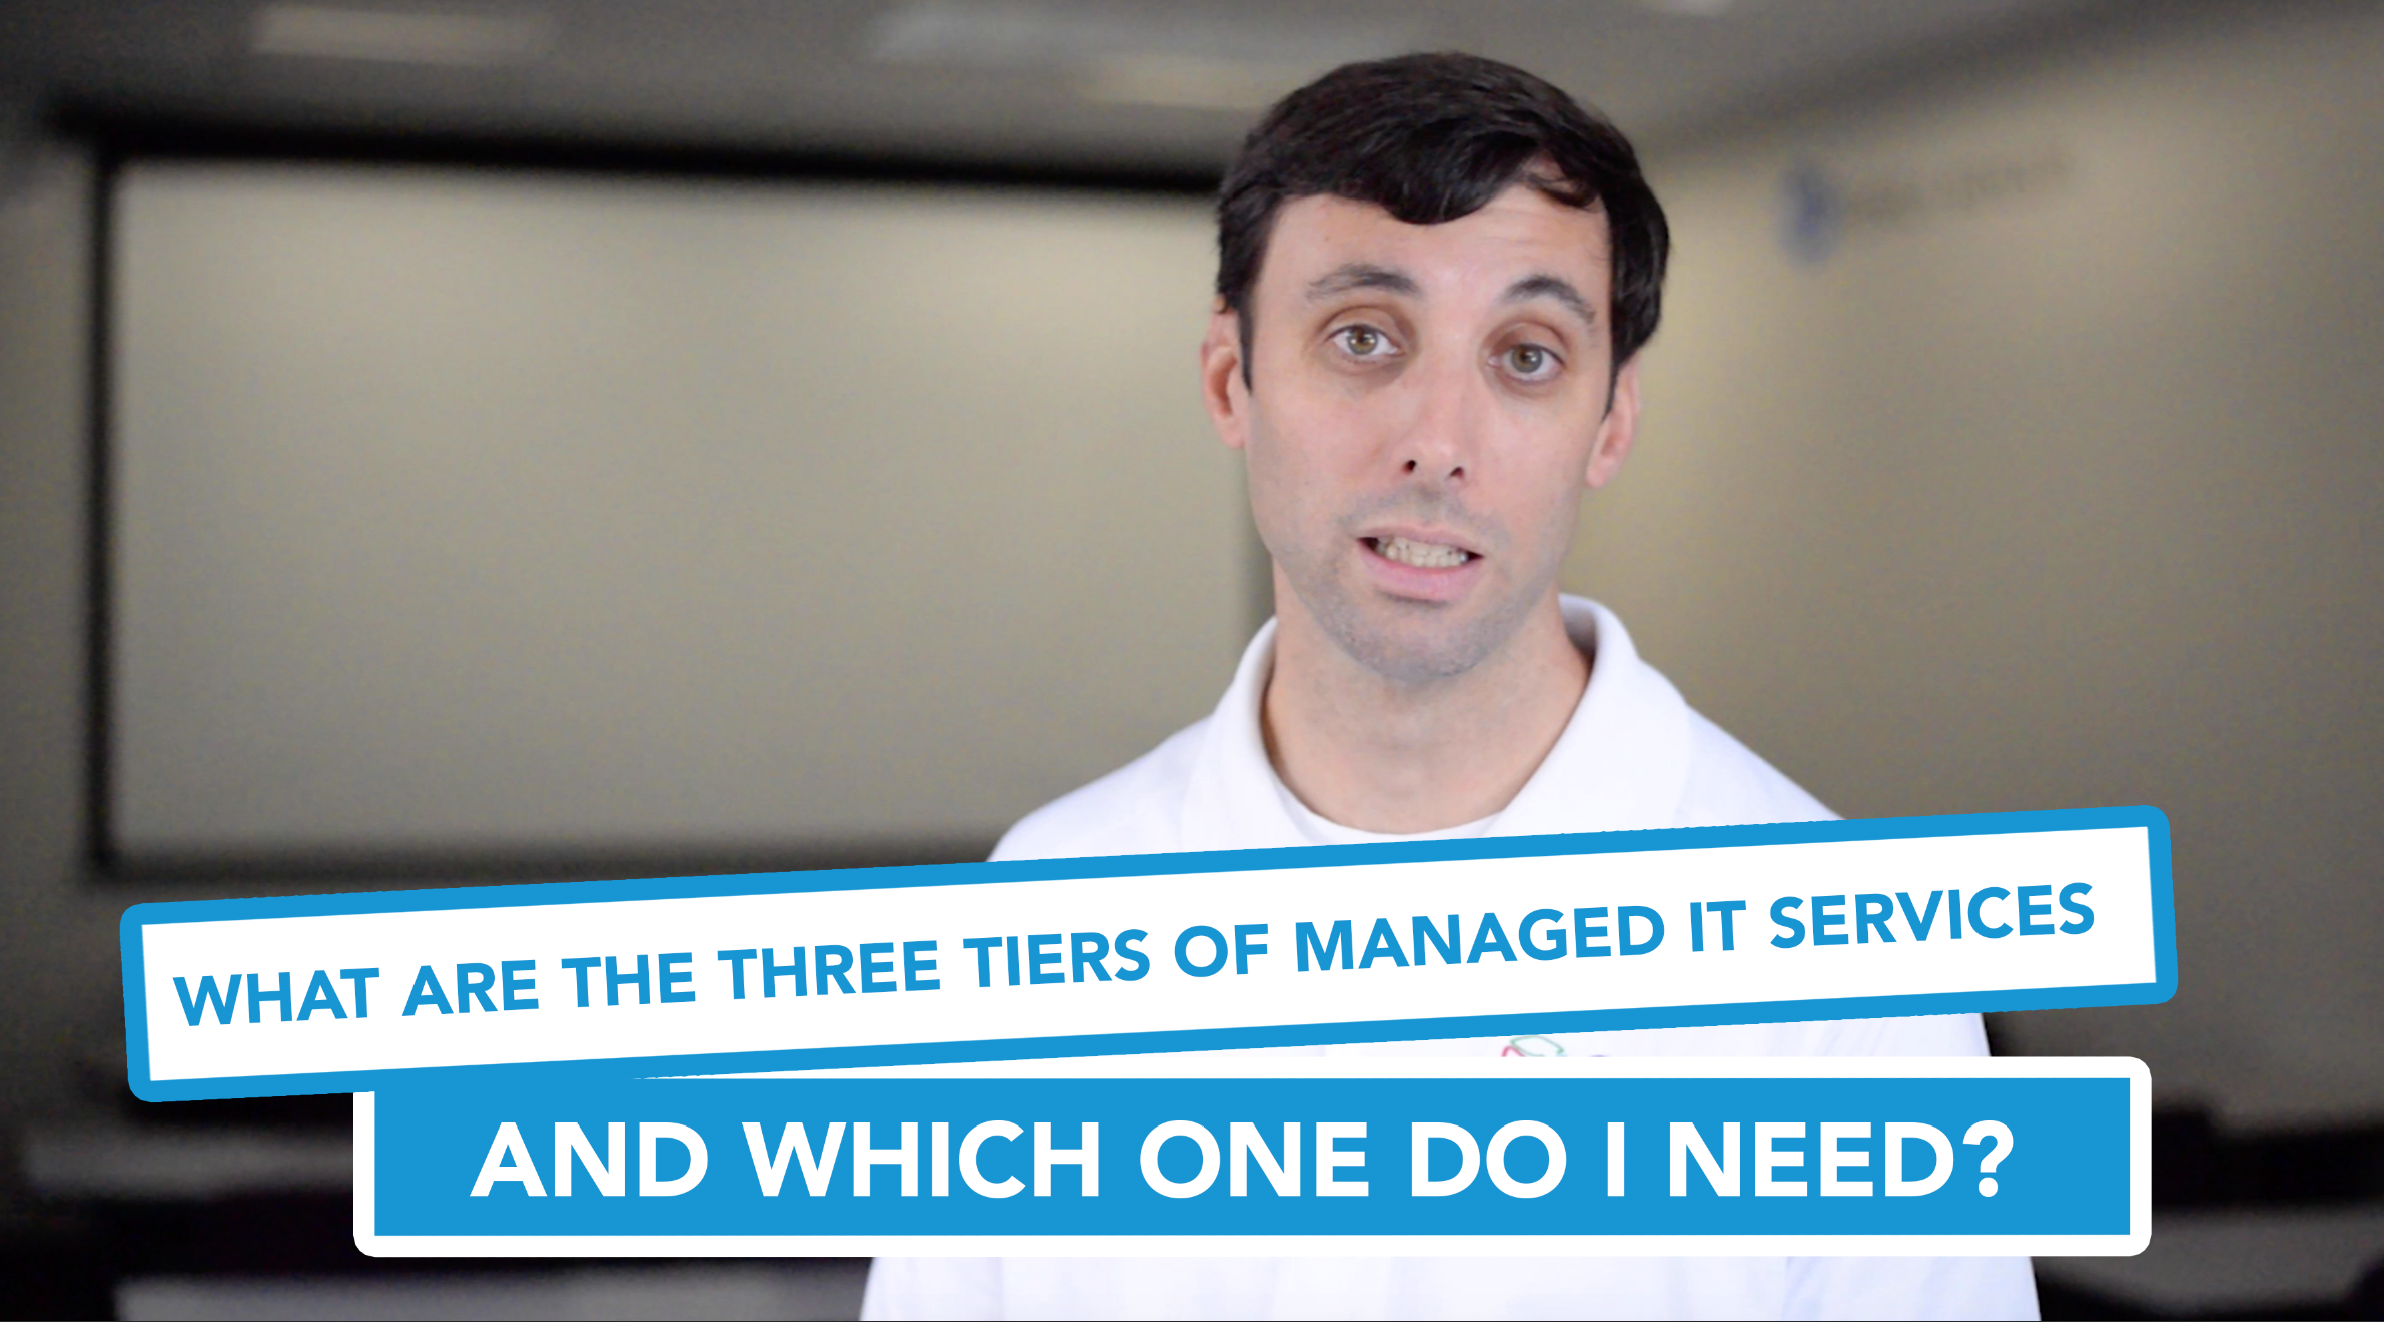 What Are the Three Tiers of Managed IT Services, and Which One Do I Need